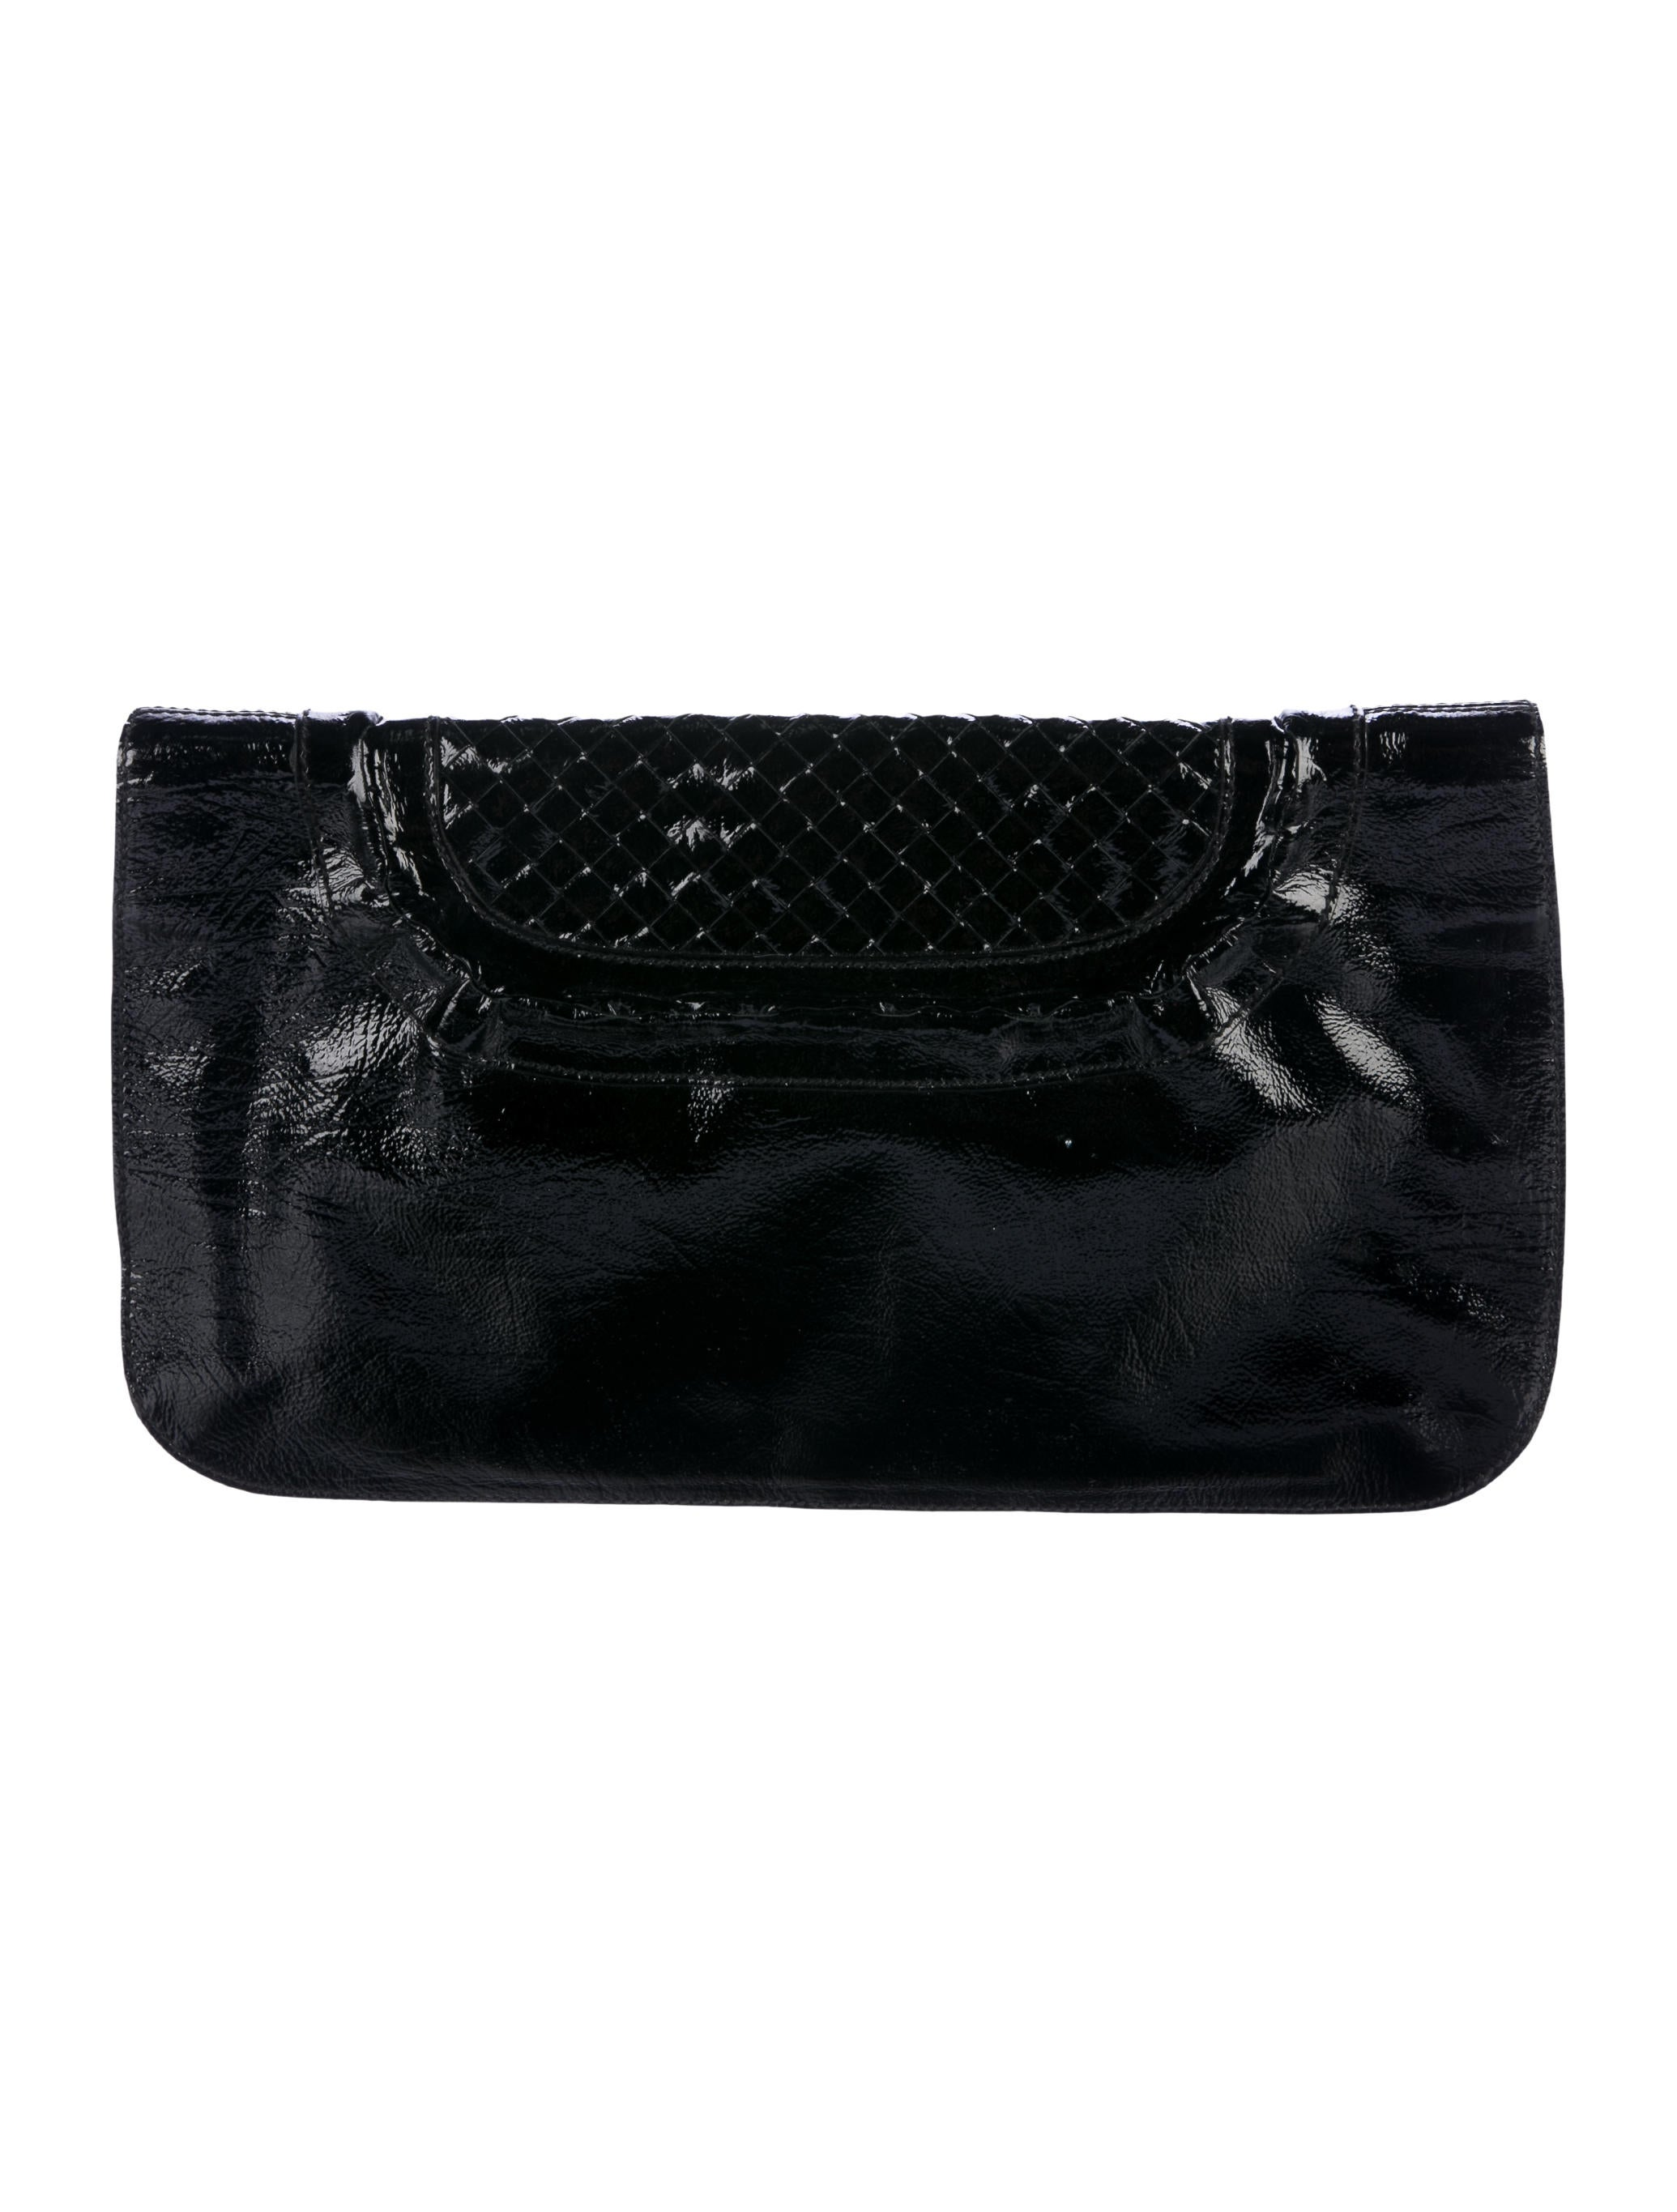 Salvatore Ferragamo Salvador Ferragamo Patent-leather Clutch/ Shoulder Bag JuQOLzTv